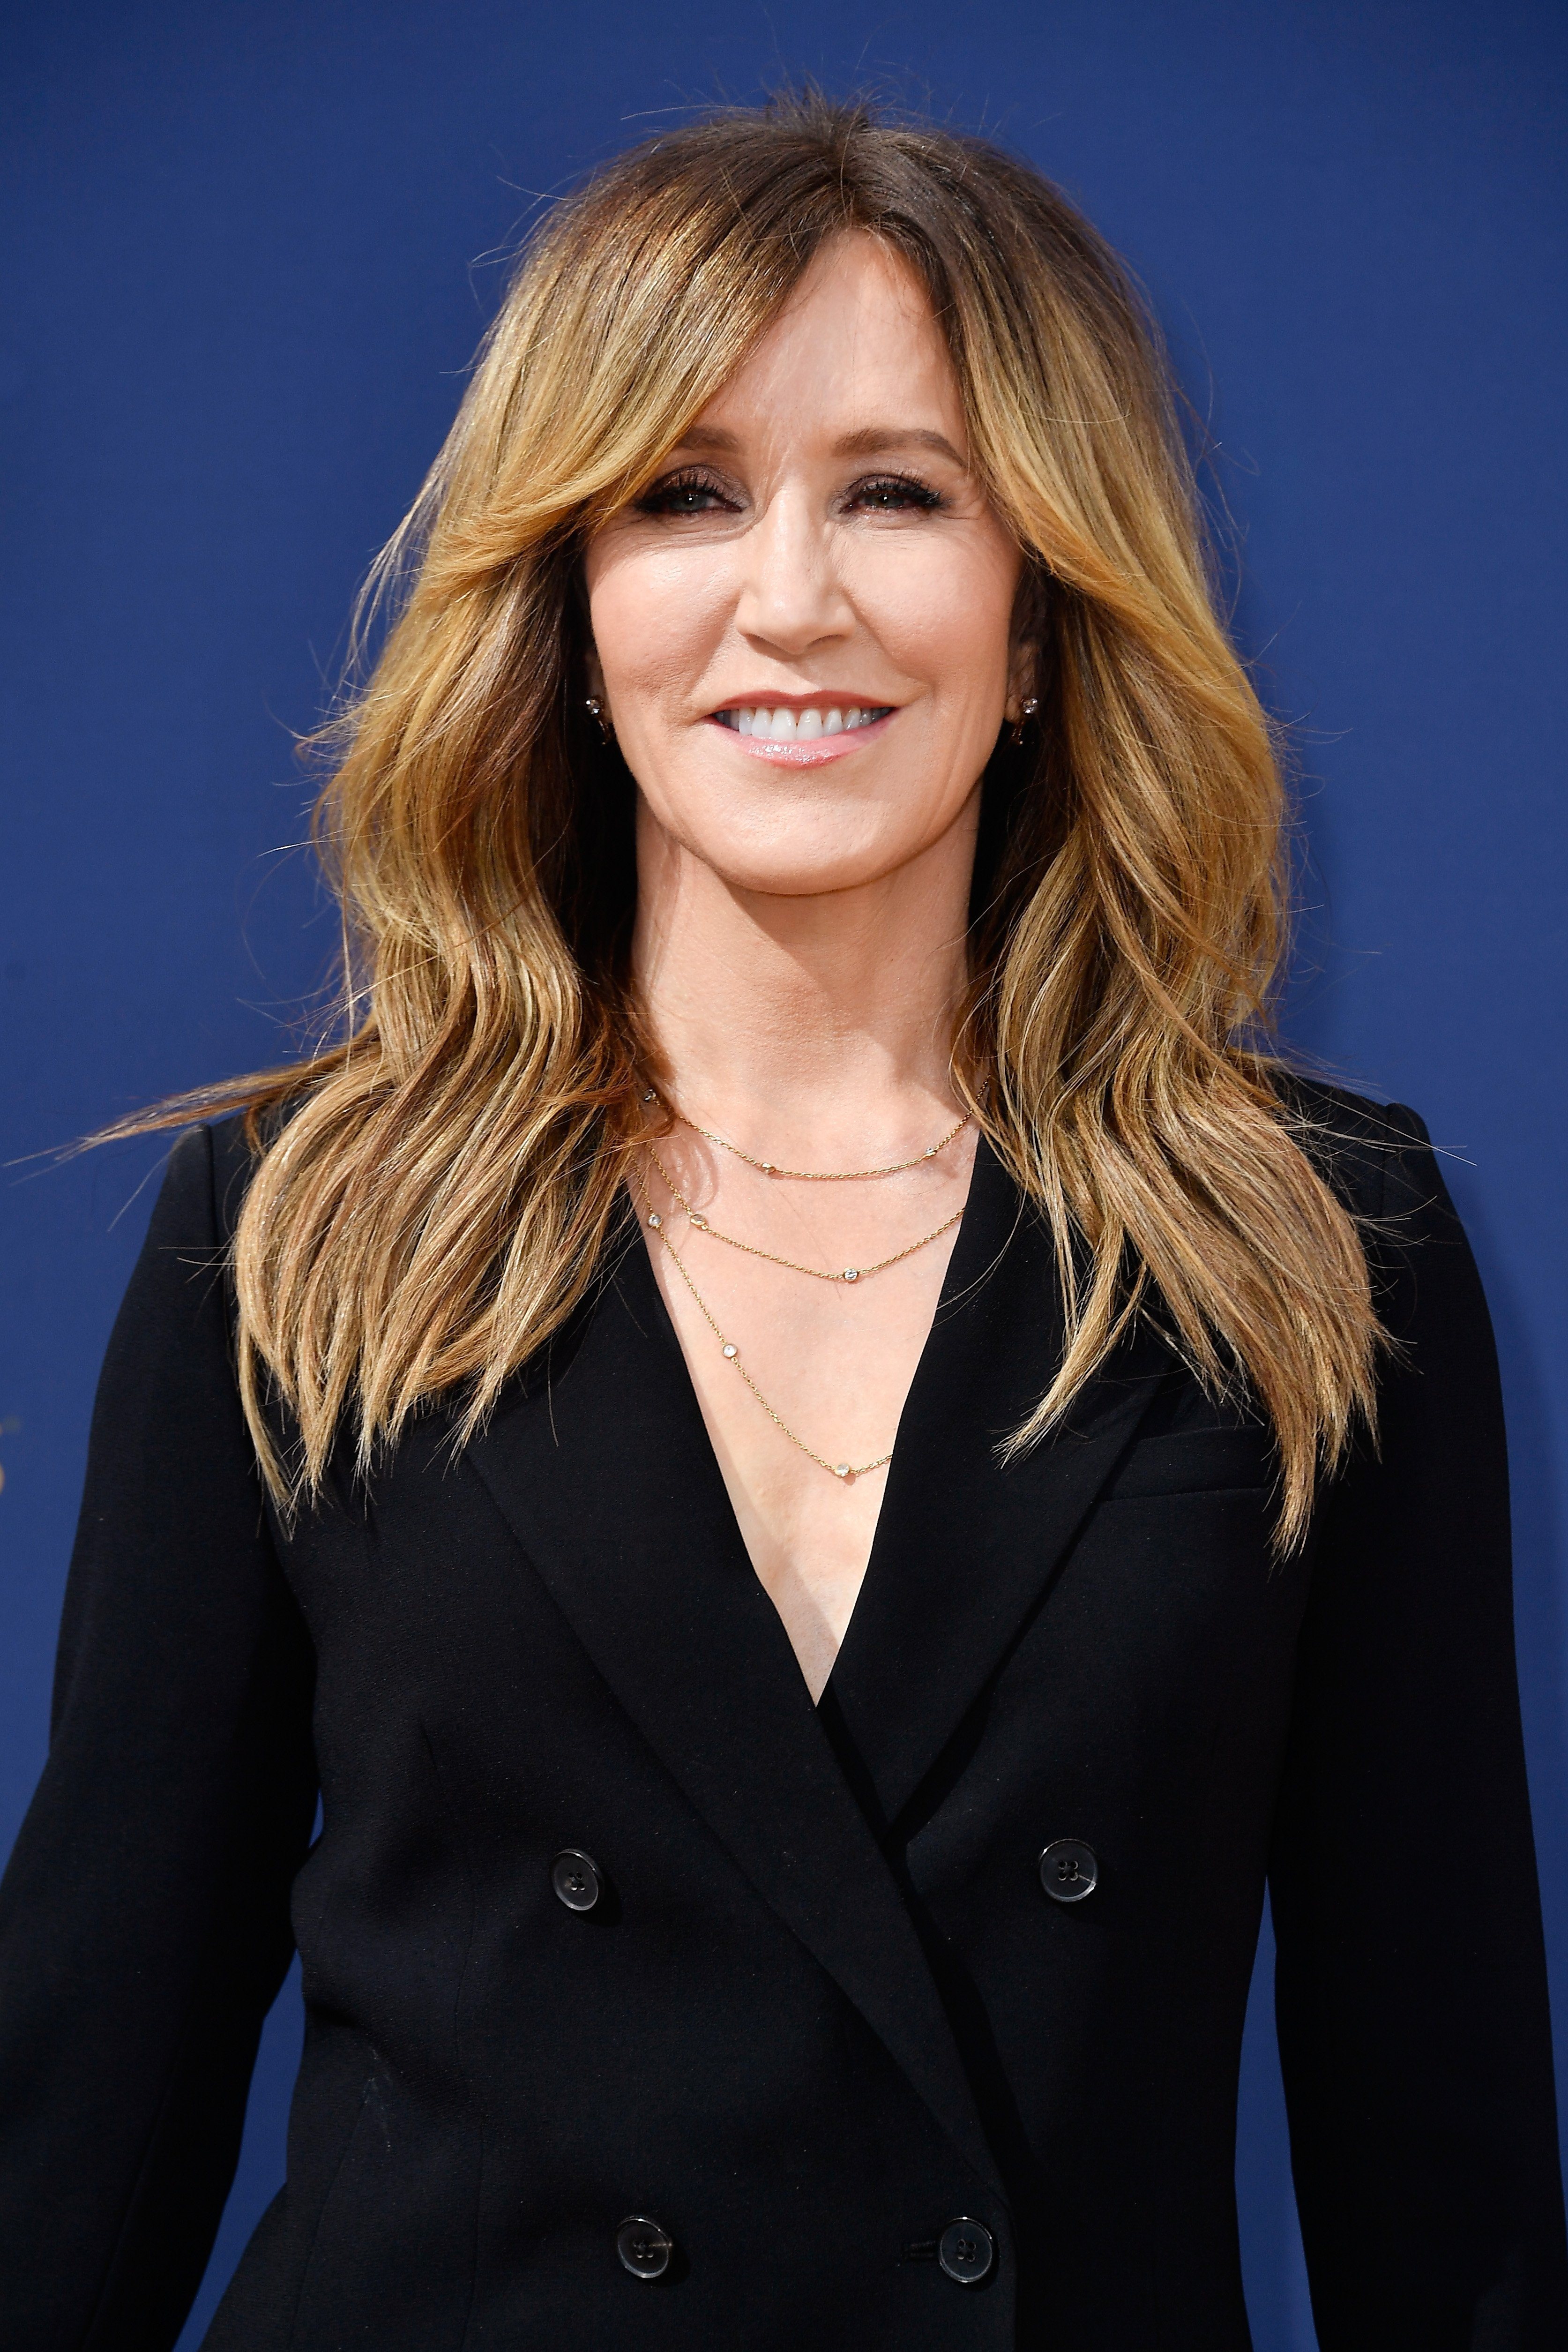 Felicity Huffman 55, at the 2018 Emmy Awards Red Carpet | Photo: Getty Images